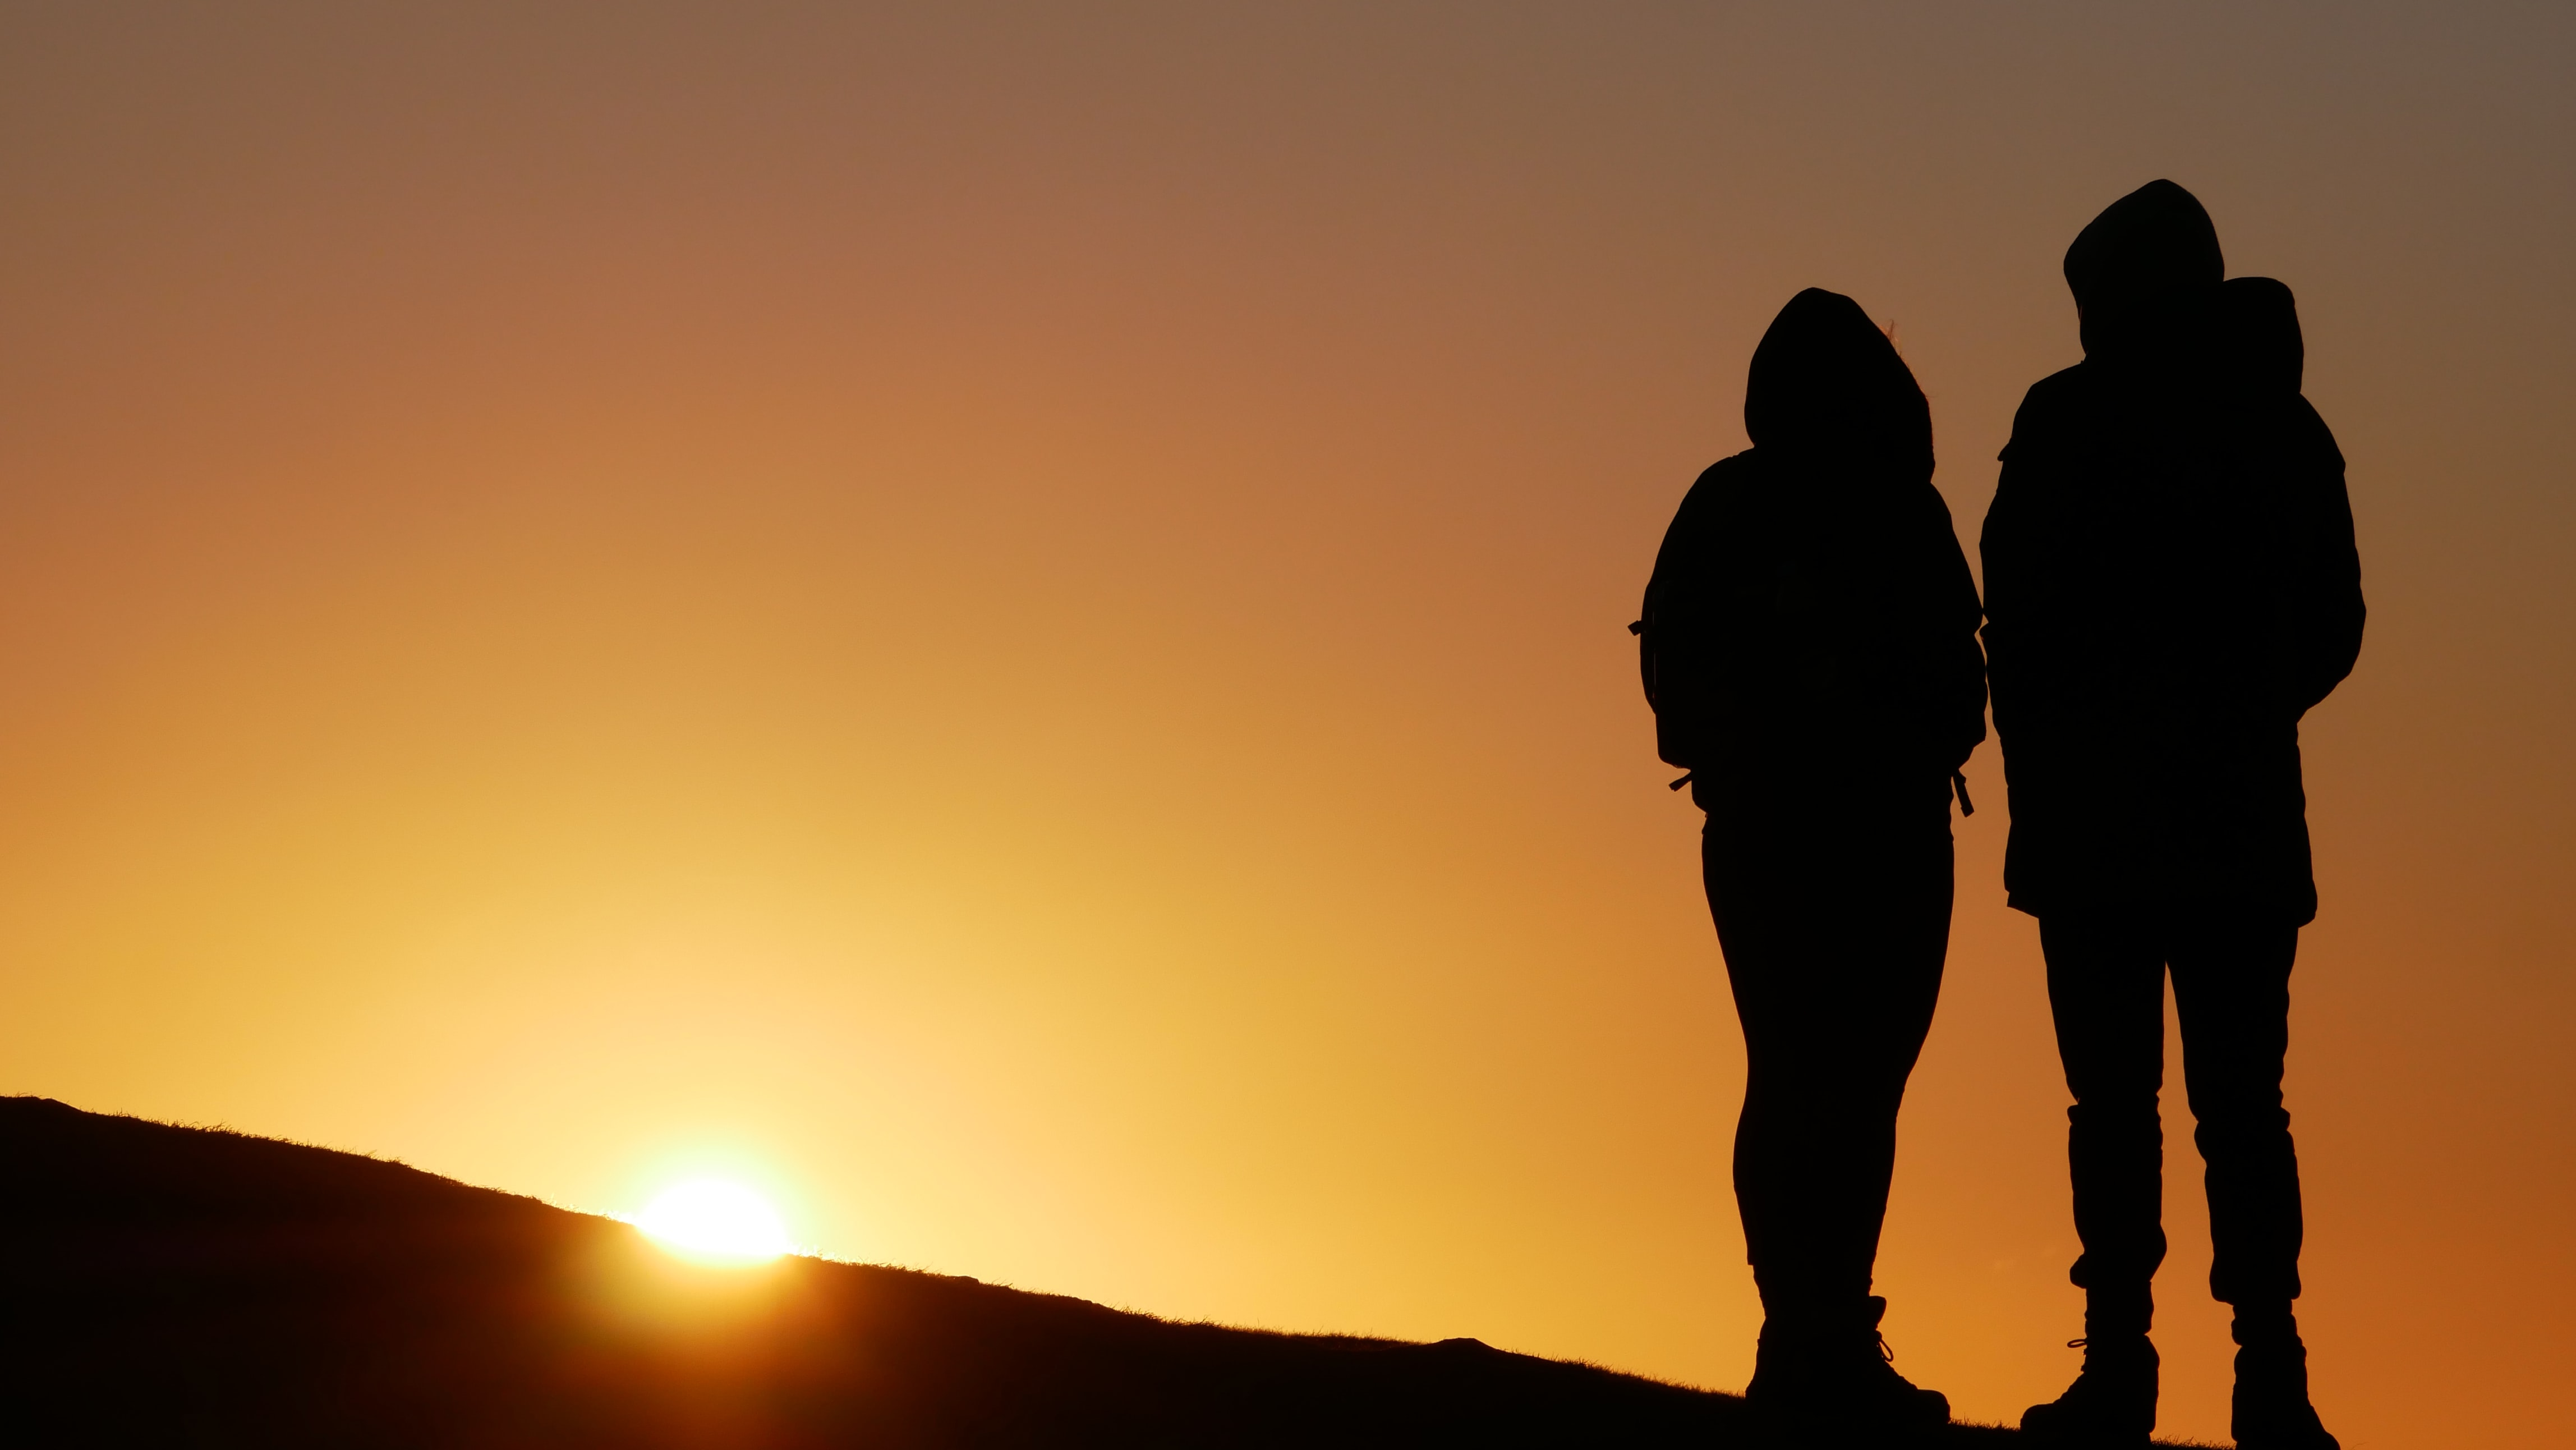 silhouette of people on top of hill during sunset